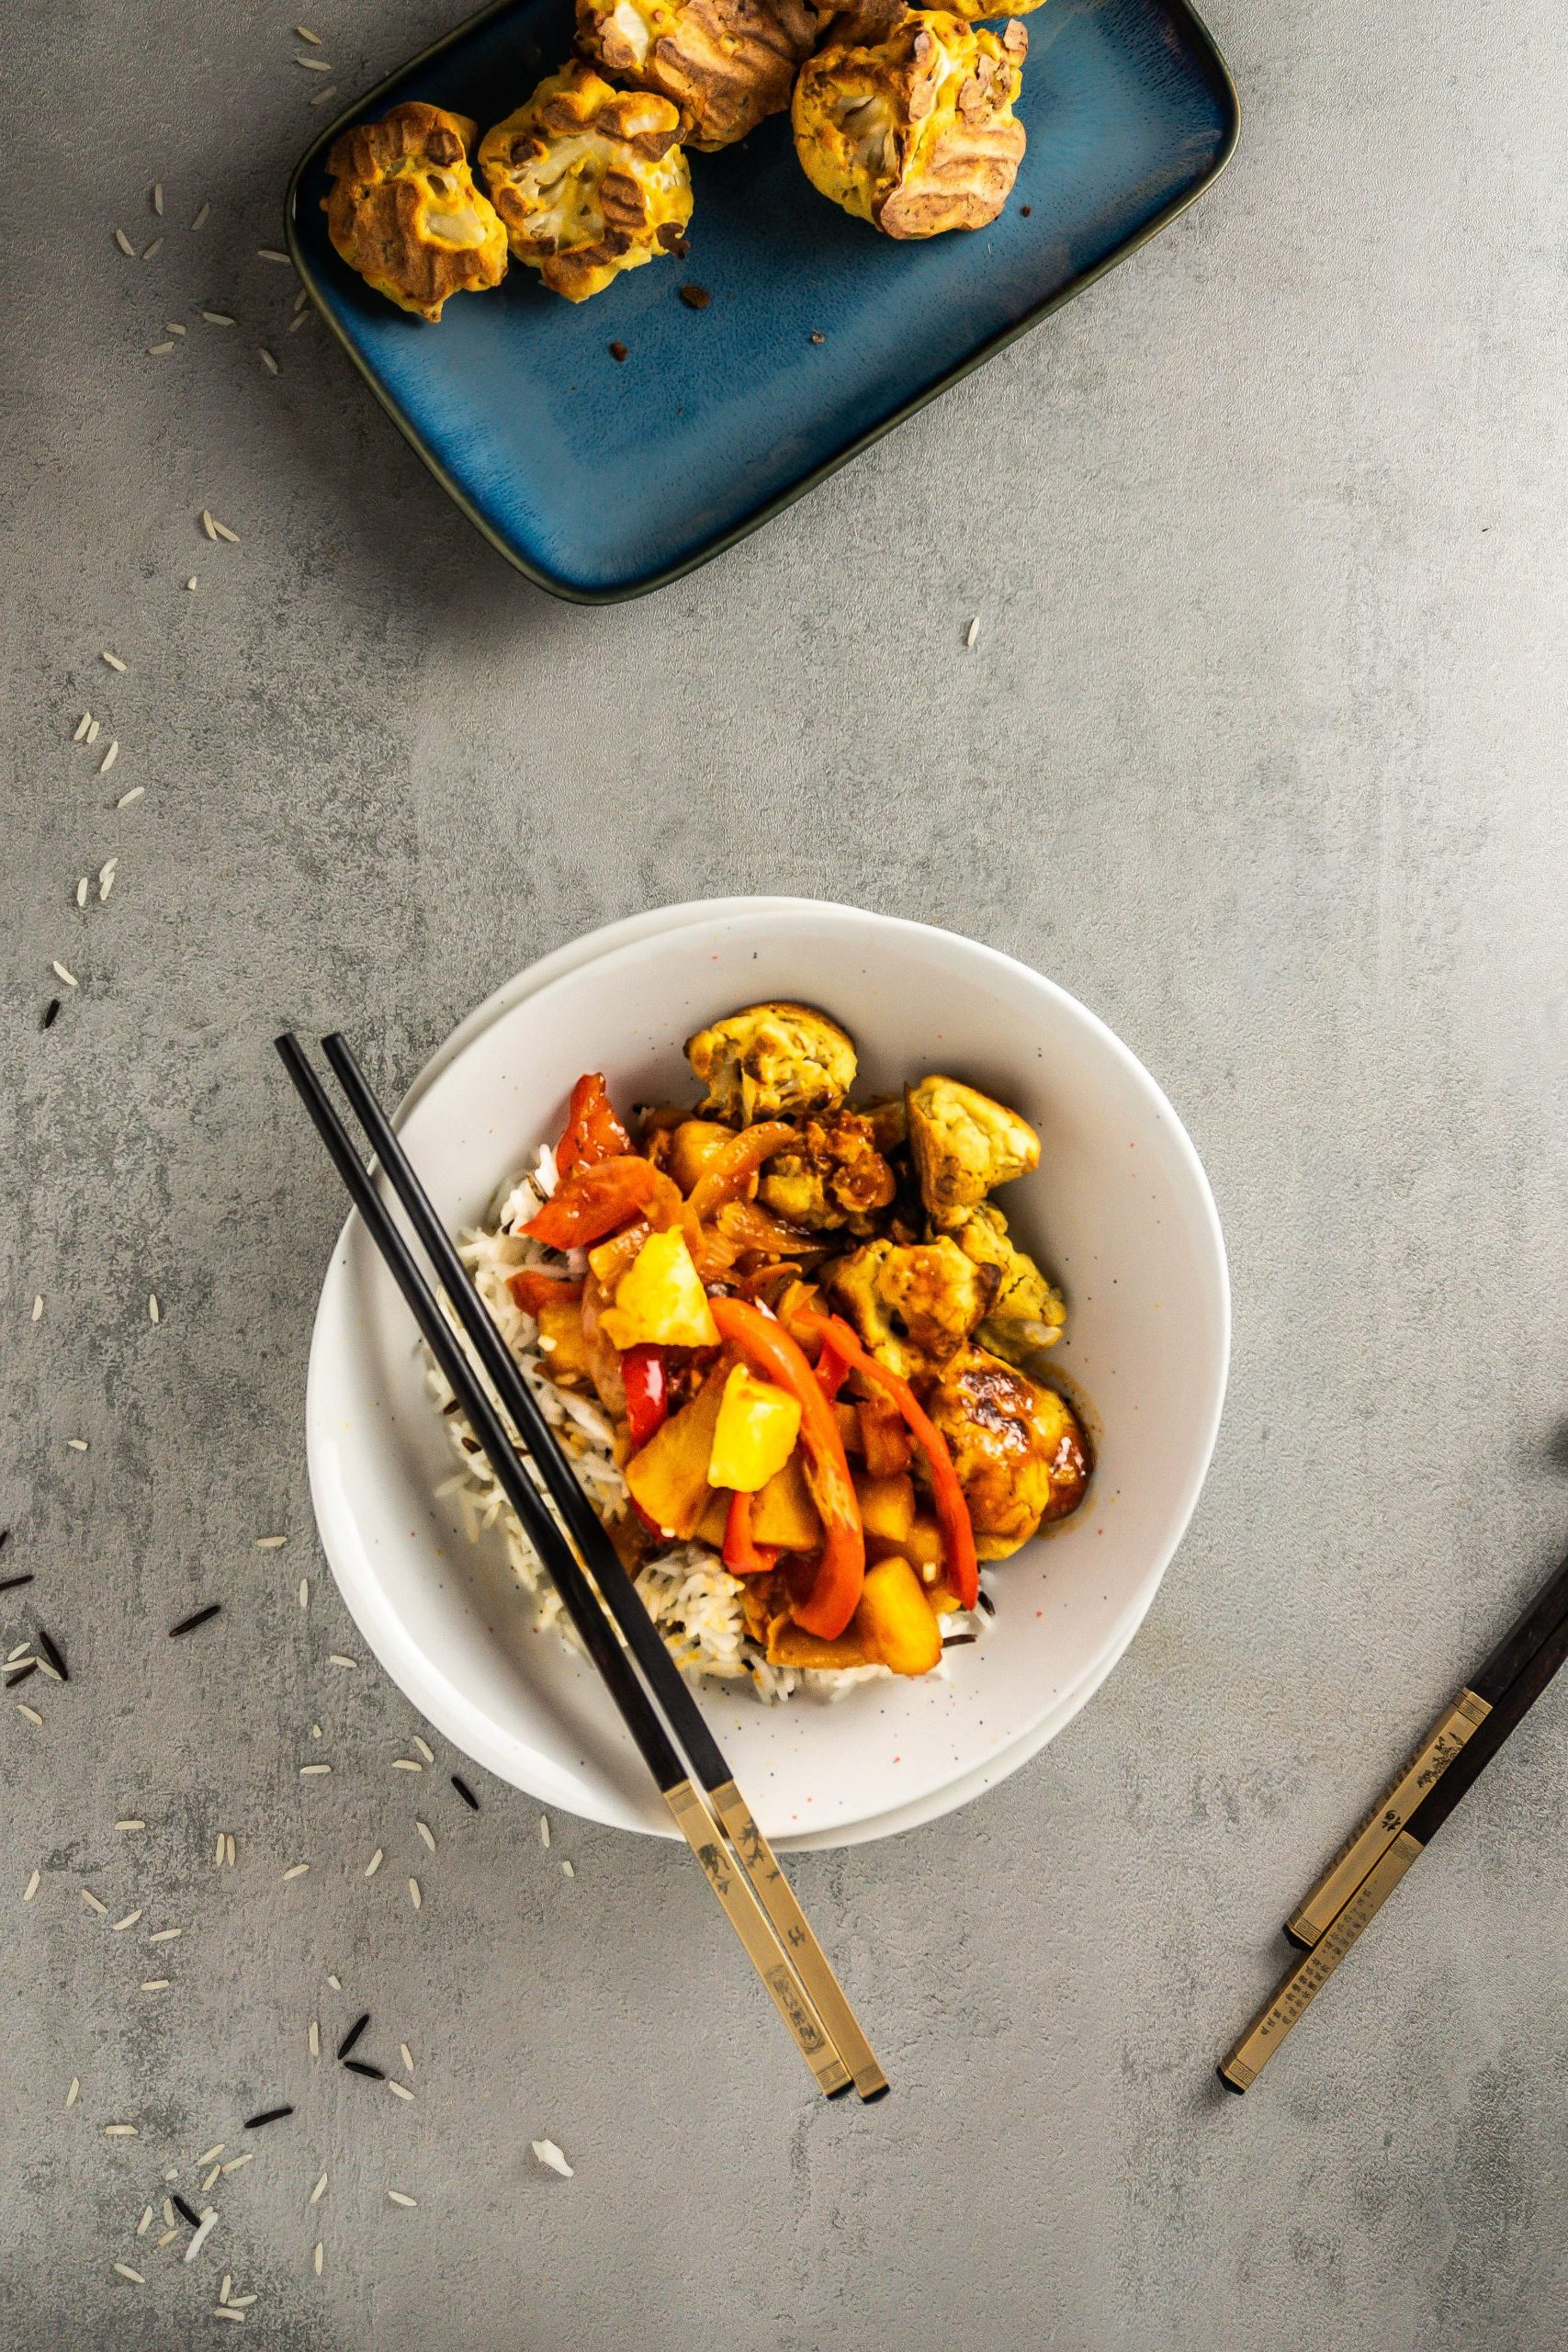 Chinese Sweet and Sour (Sauce) with rice and battered cauliflower, in a bowl with some chopsticks ready for eating